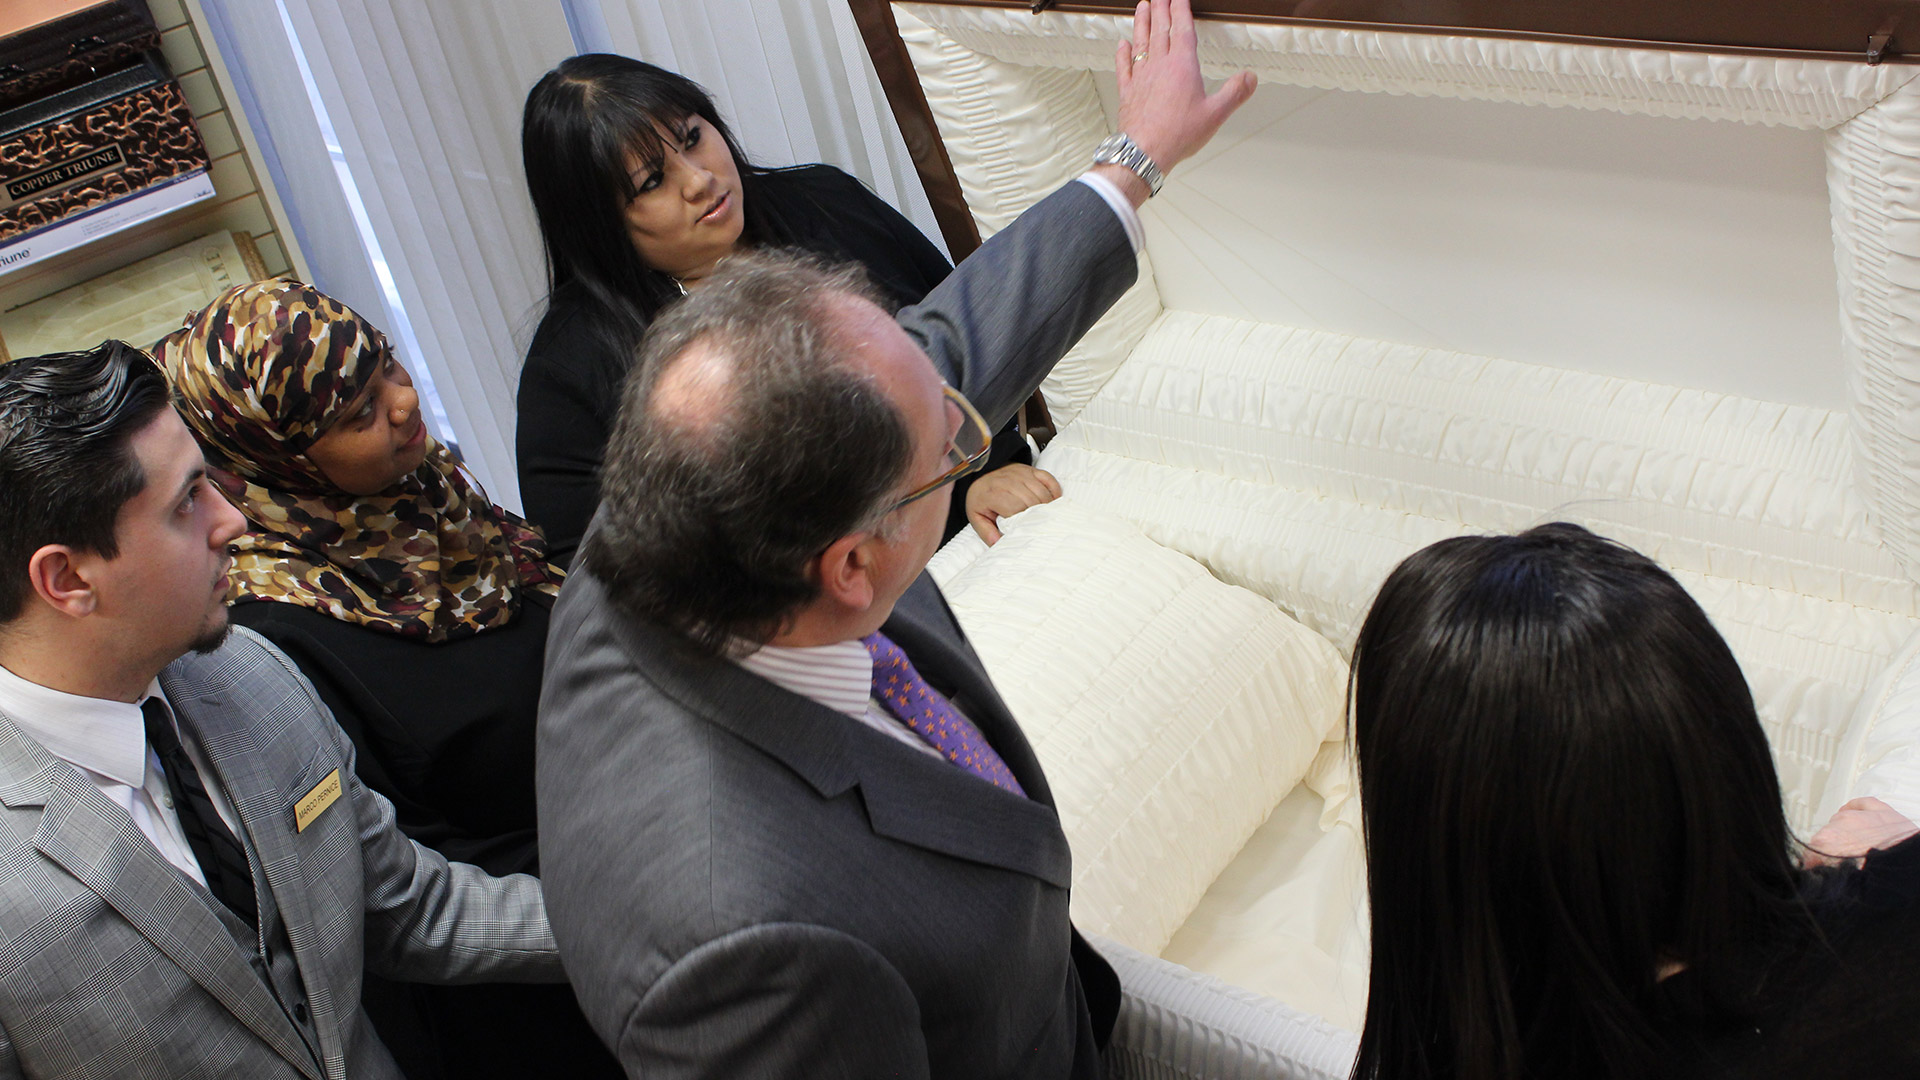 Funeral service students study the inside of a casket